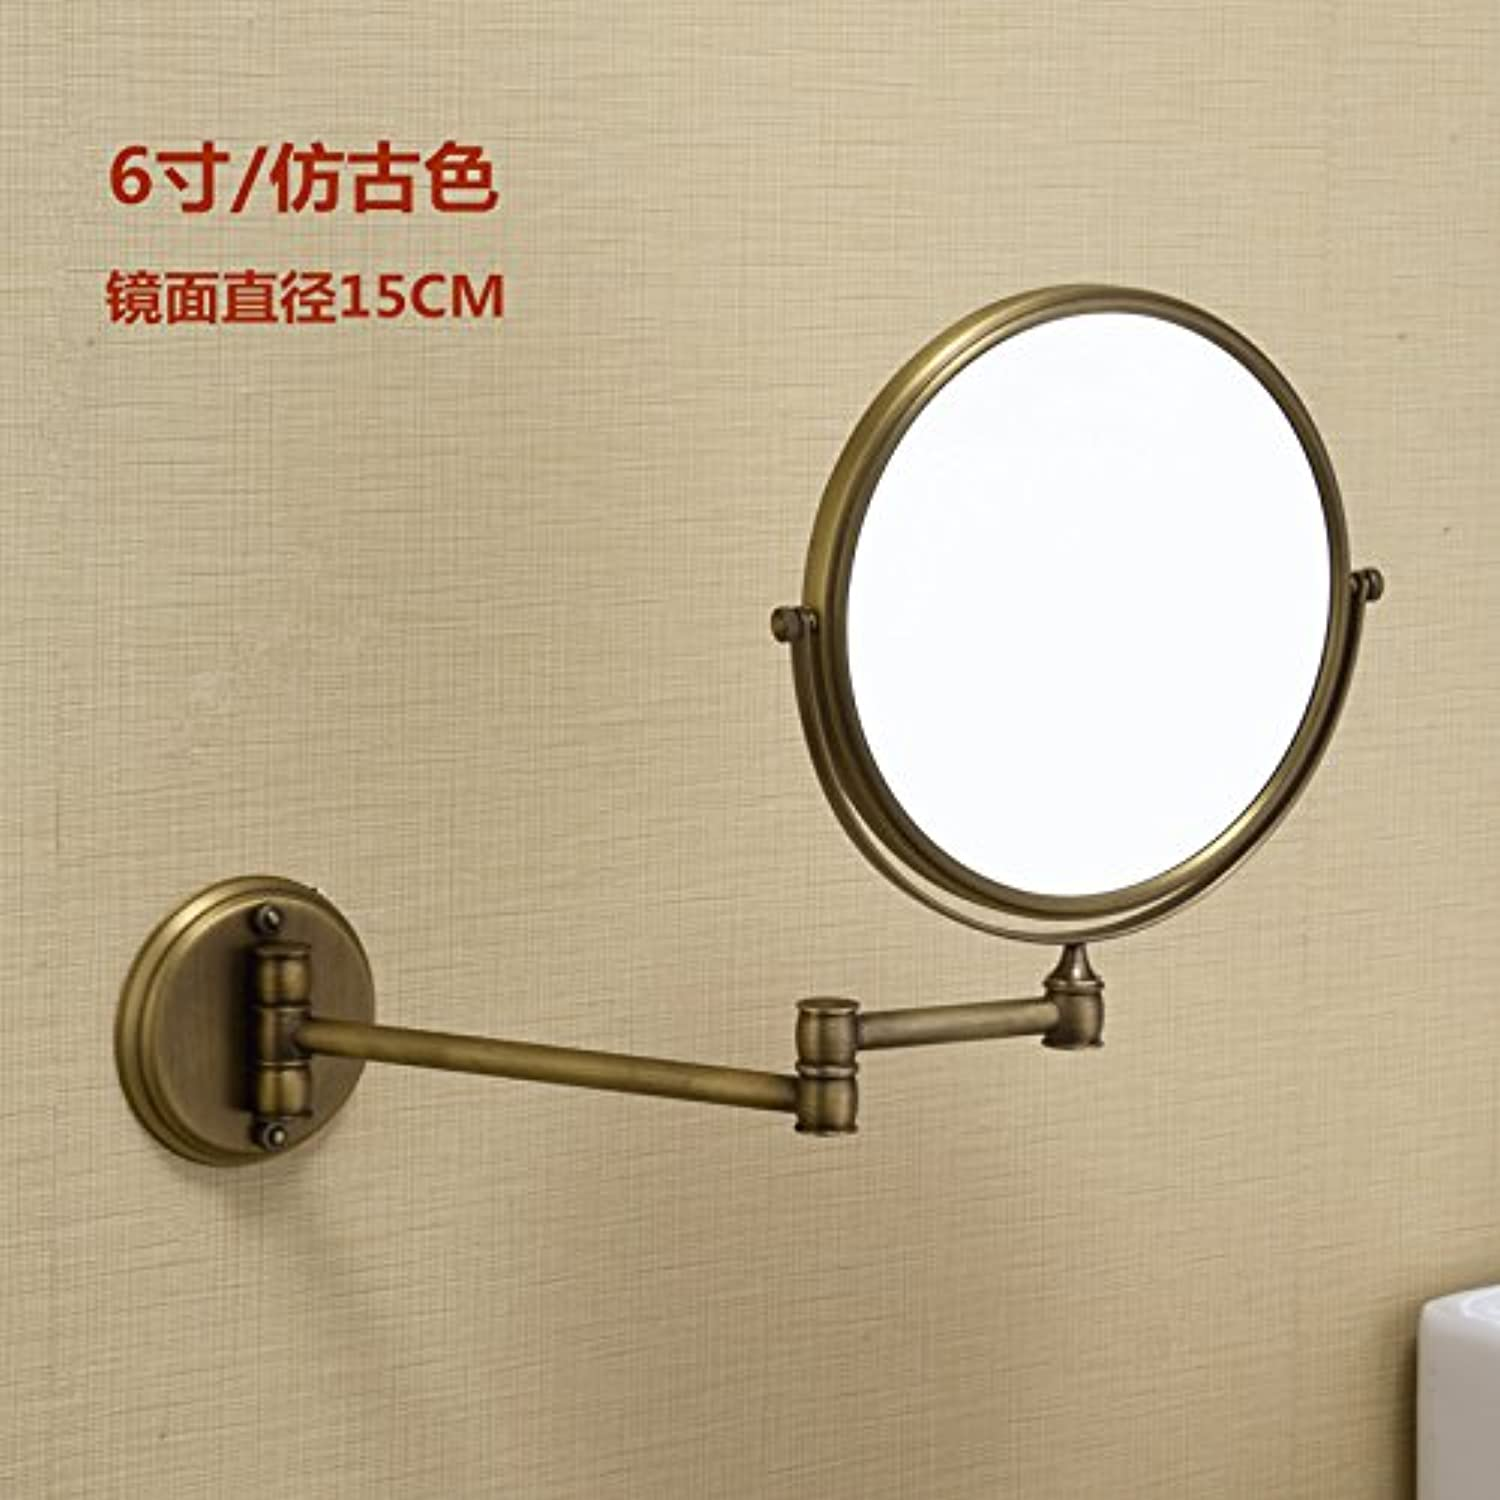 Bathroom wall mounted redating mirror folding mirror toilet telescopic mirror double sided mirror 6 inch antique color